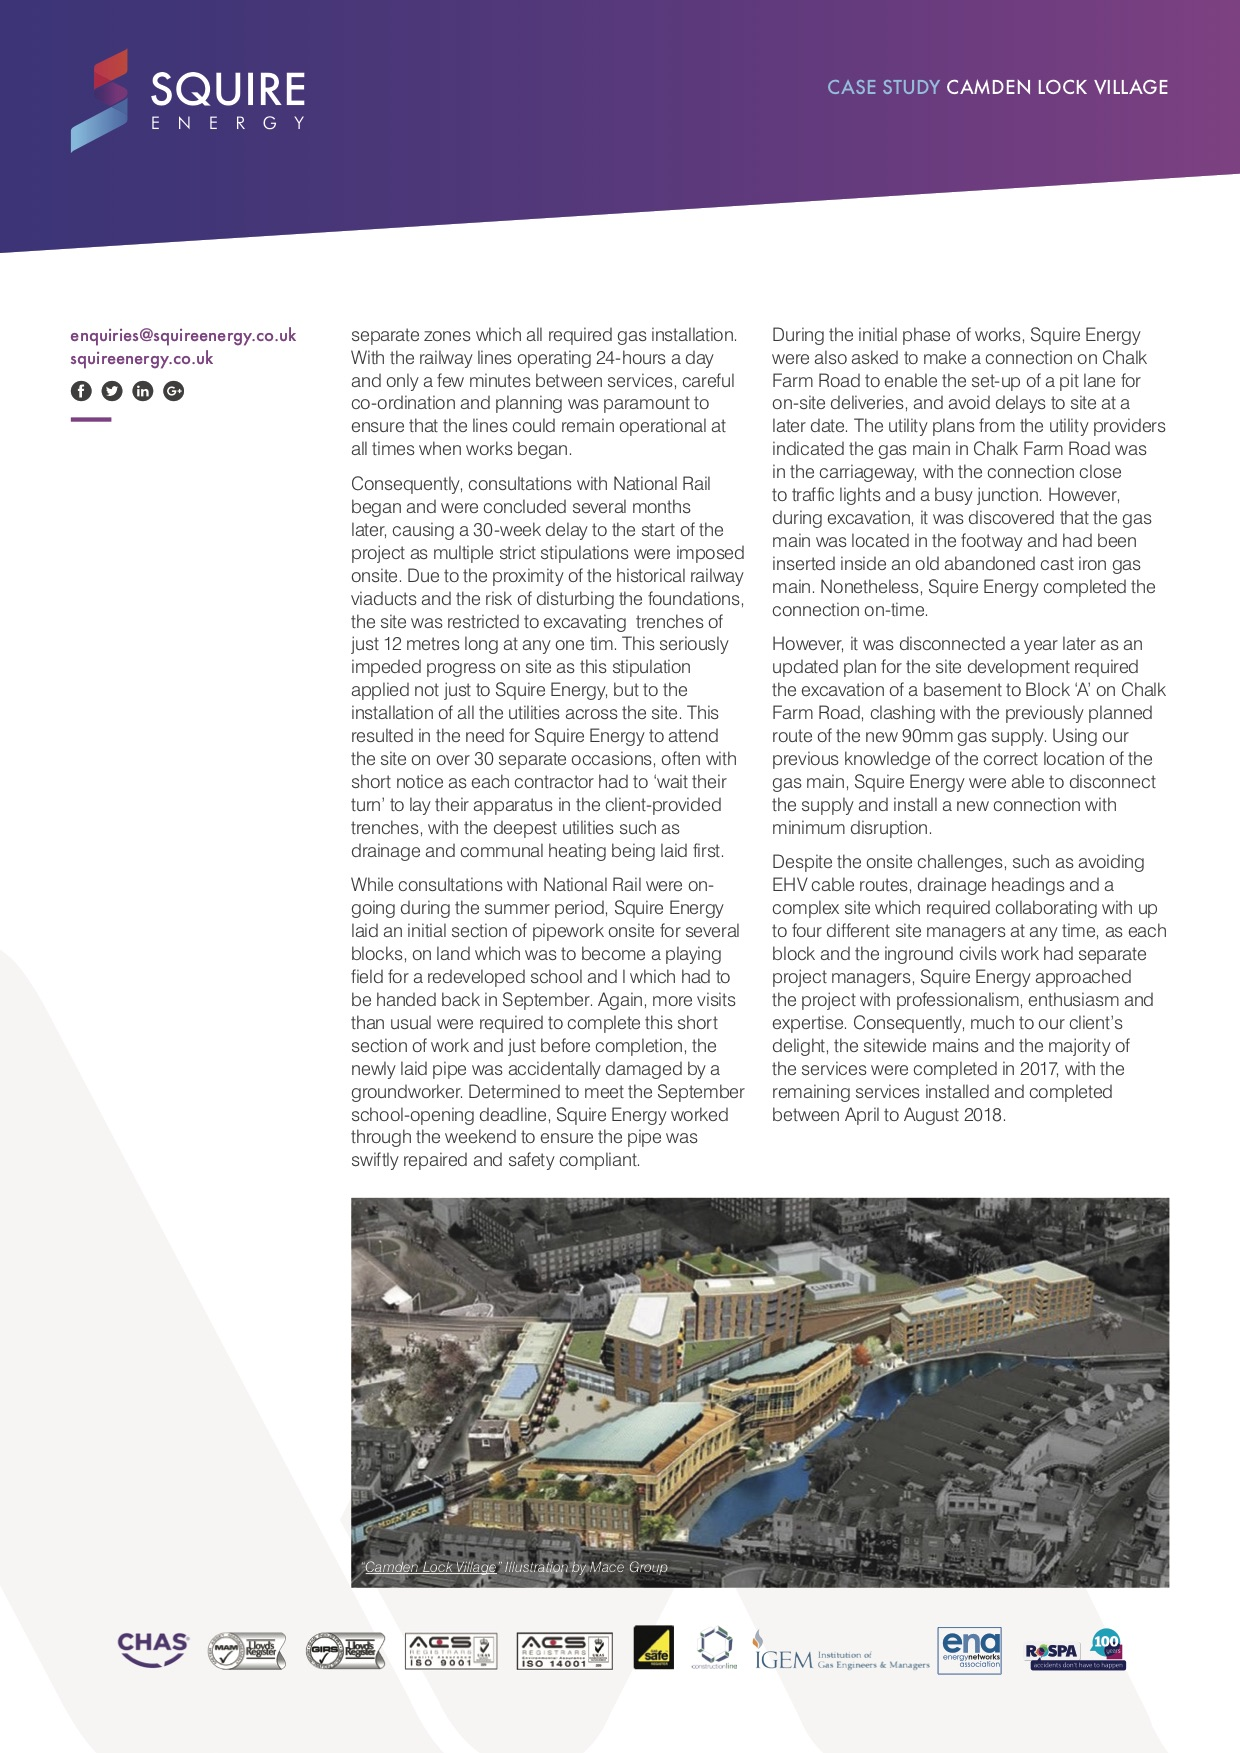 Camden Lock Village case study page two